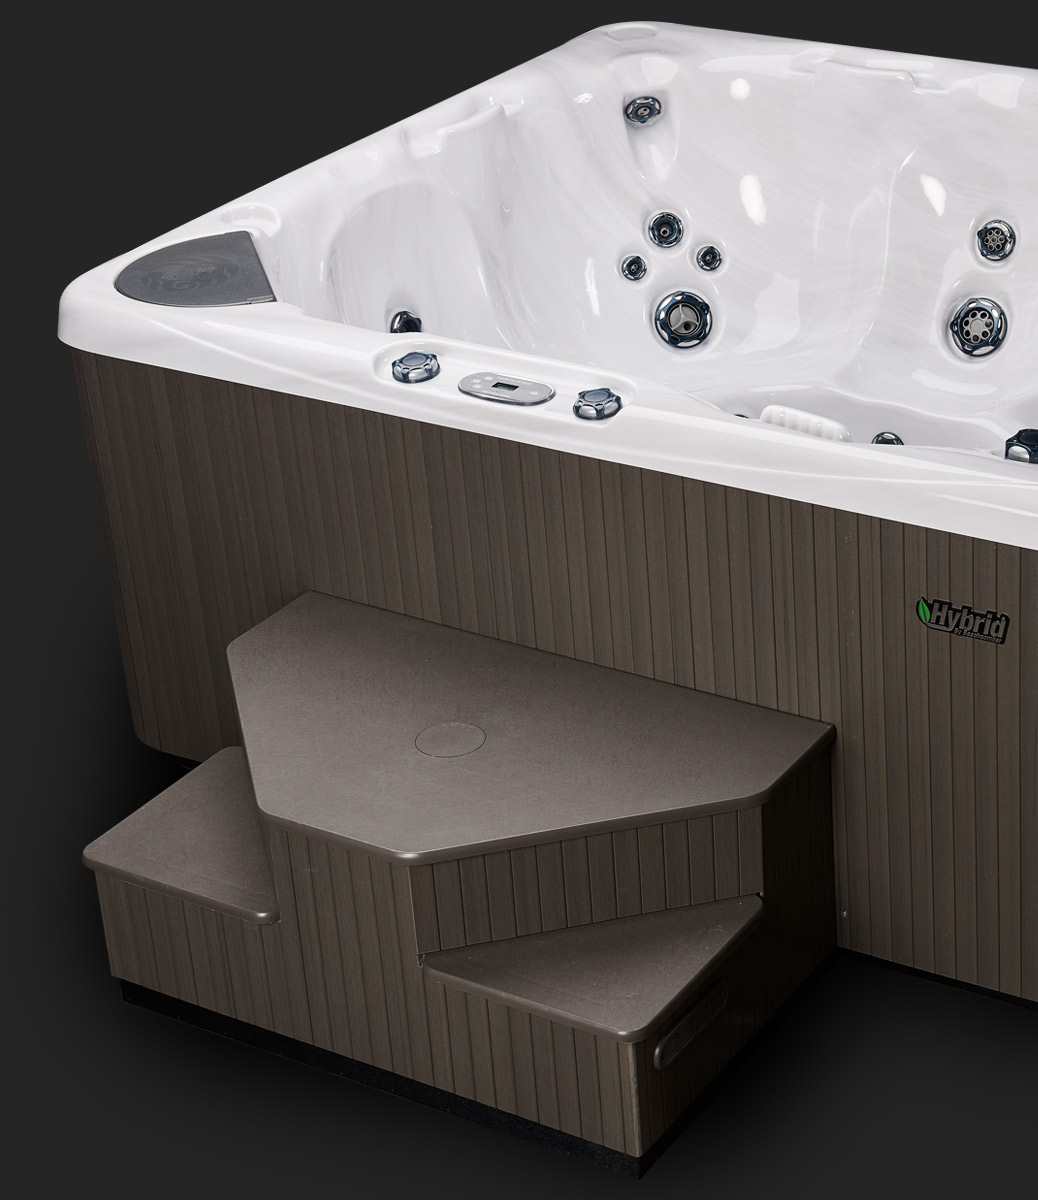 baths parts fascinating stunning home jacuzzi interior ohio design with spa whirlpool air and modern furniture jetted bathrooms center tub tubs shower